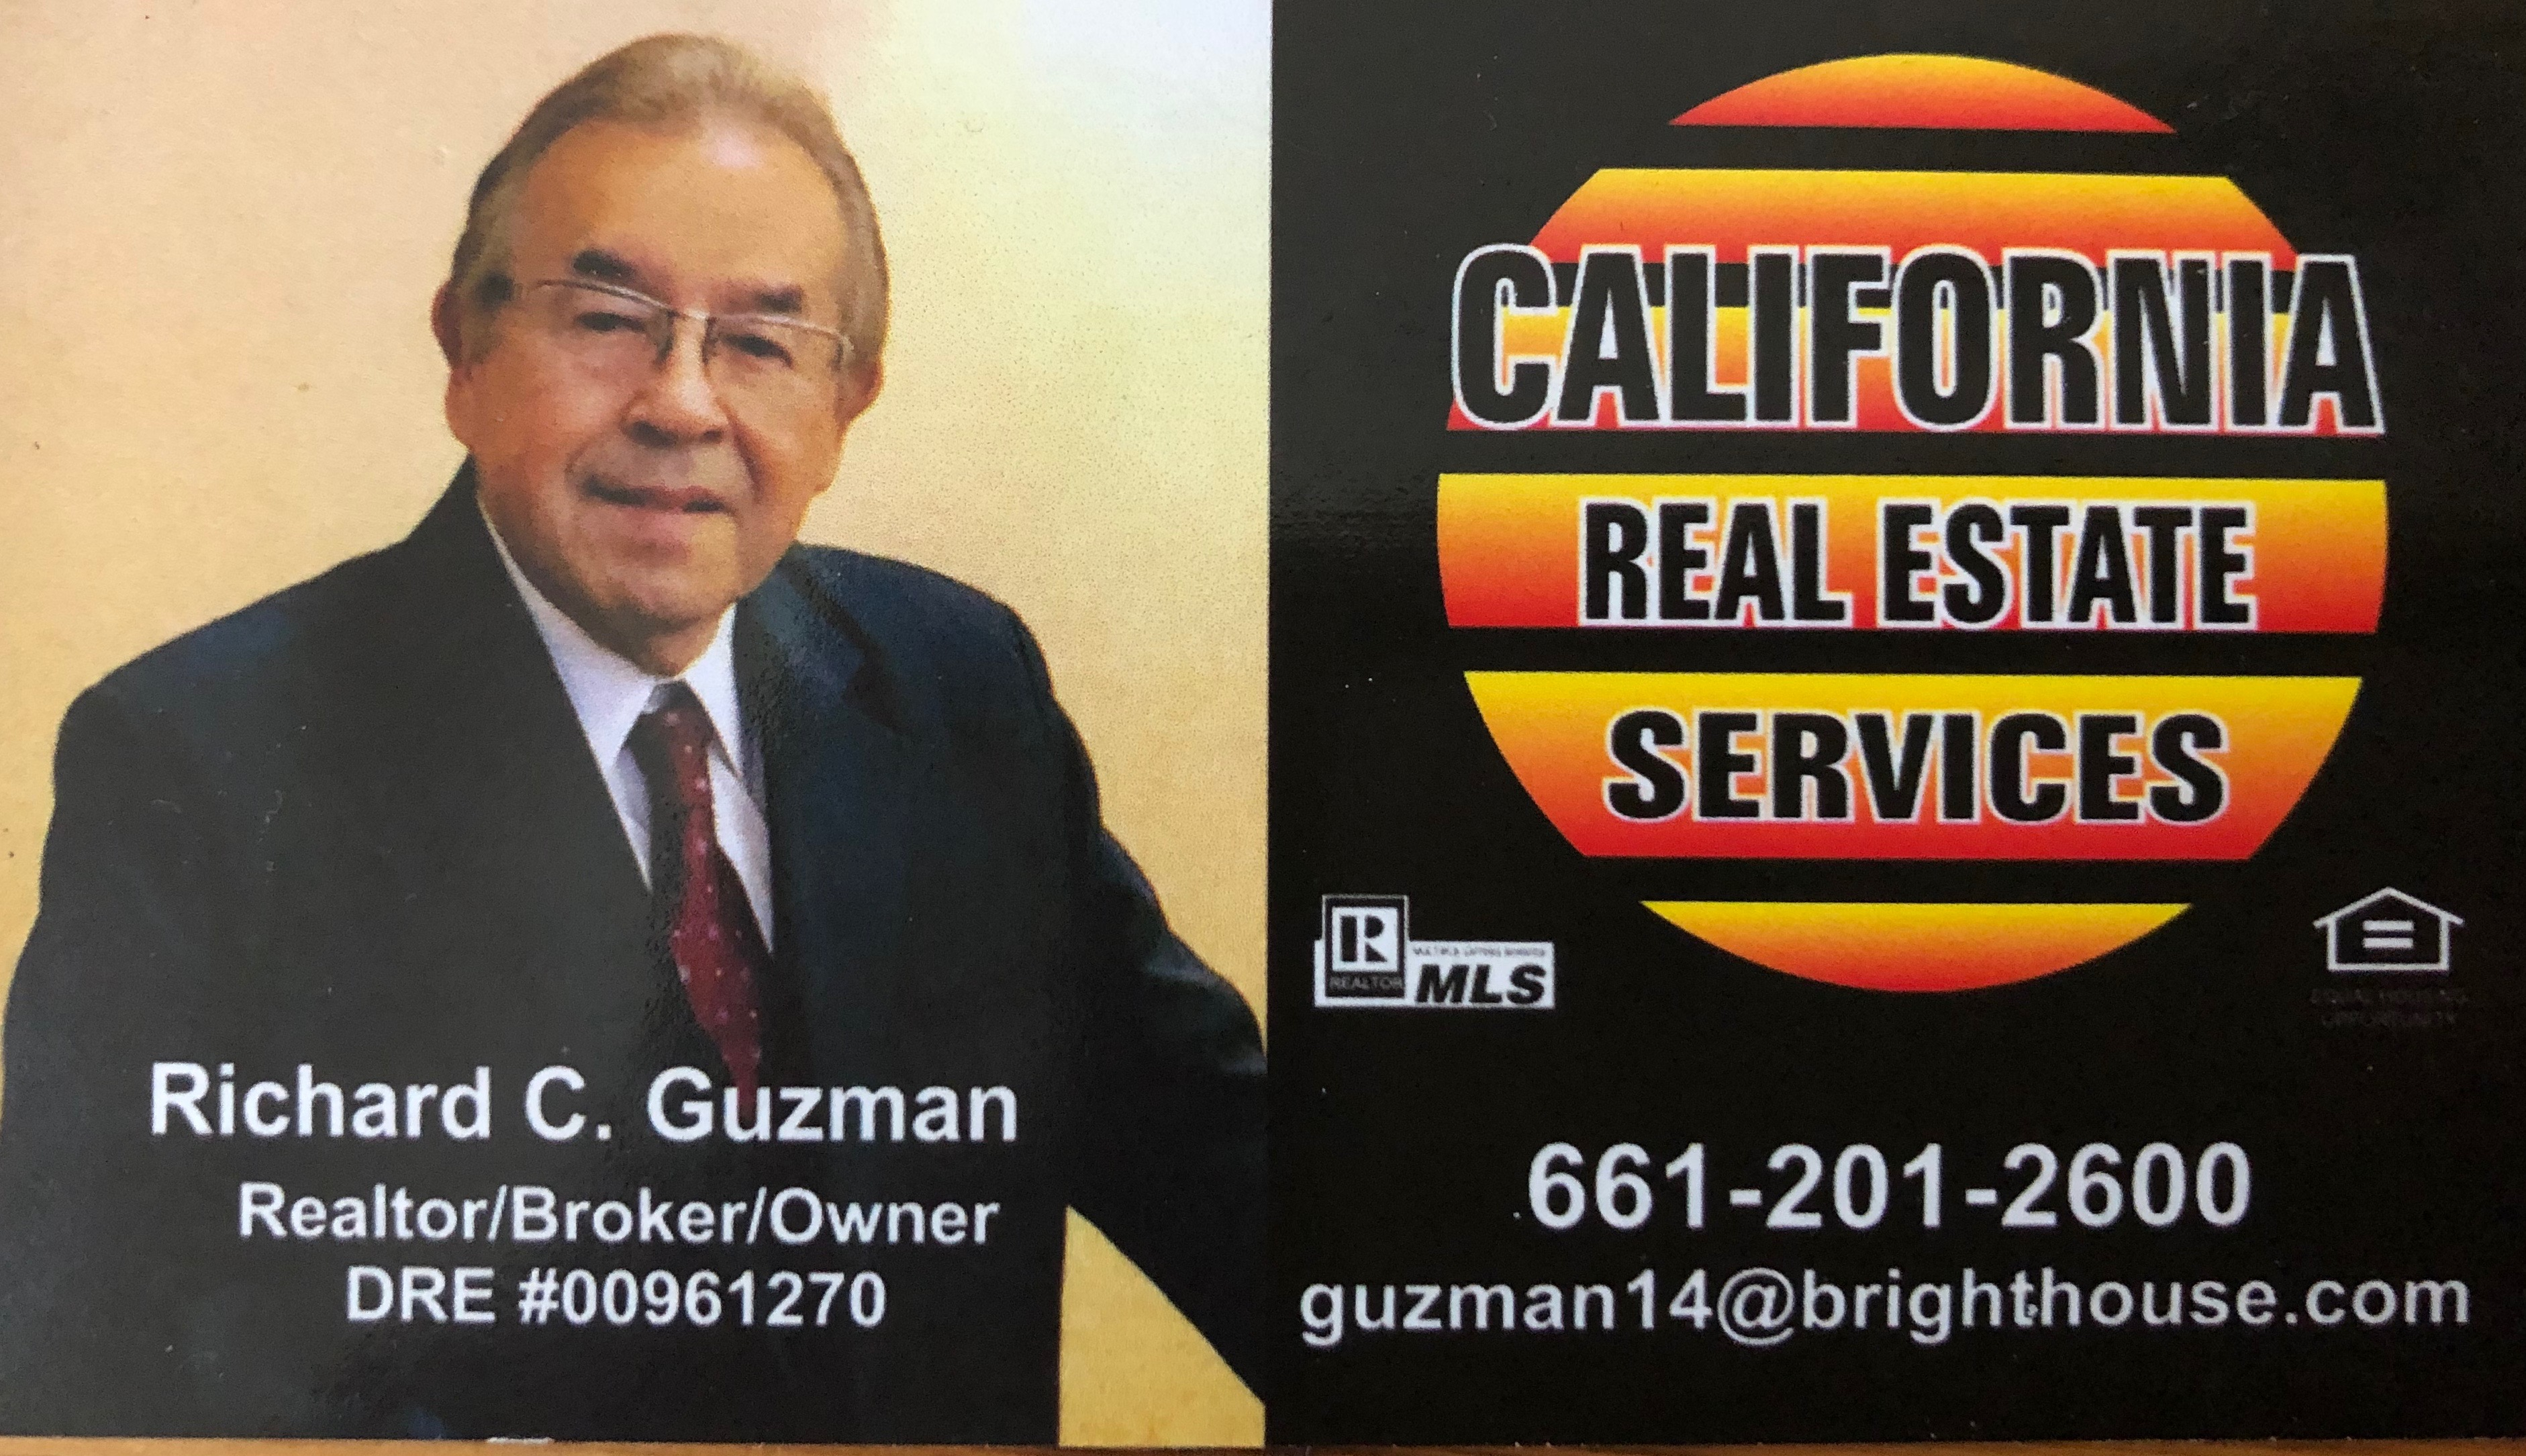 California Real Estate Services